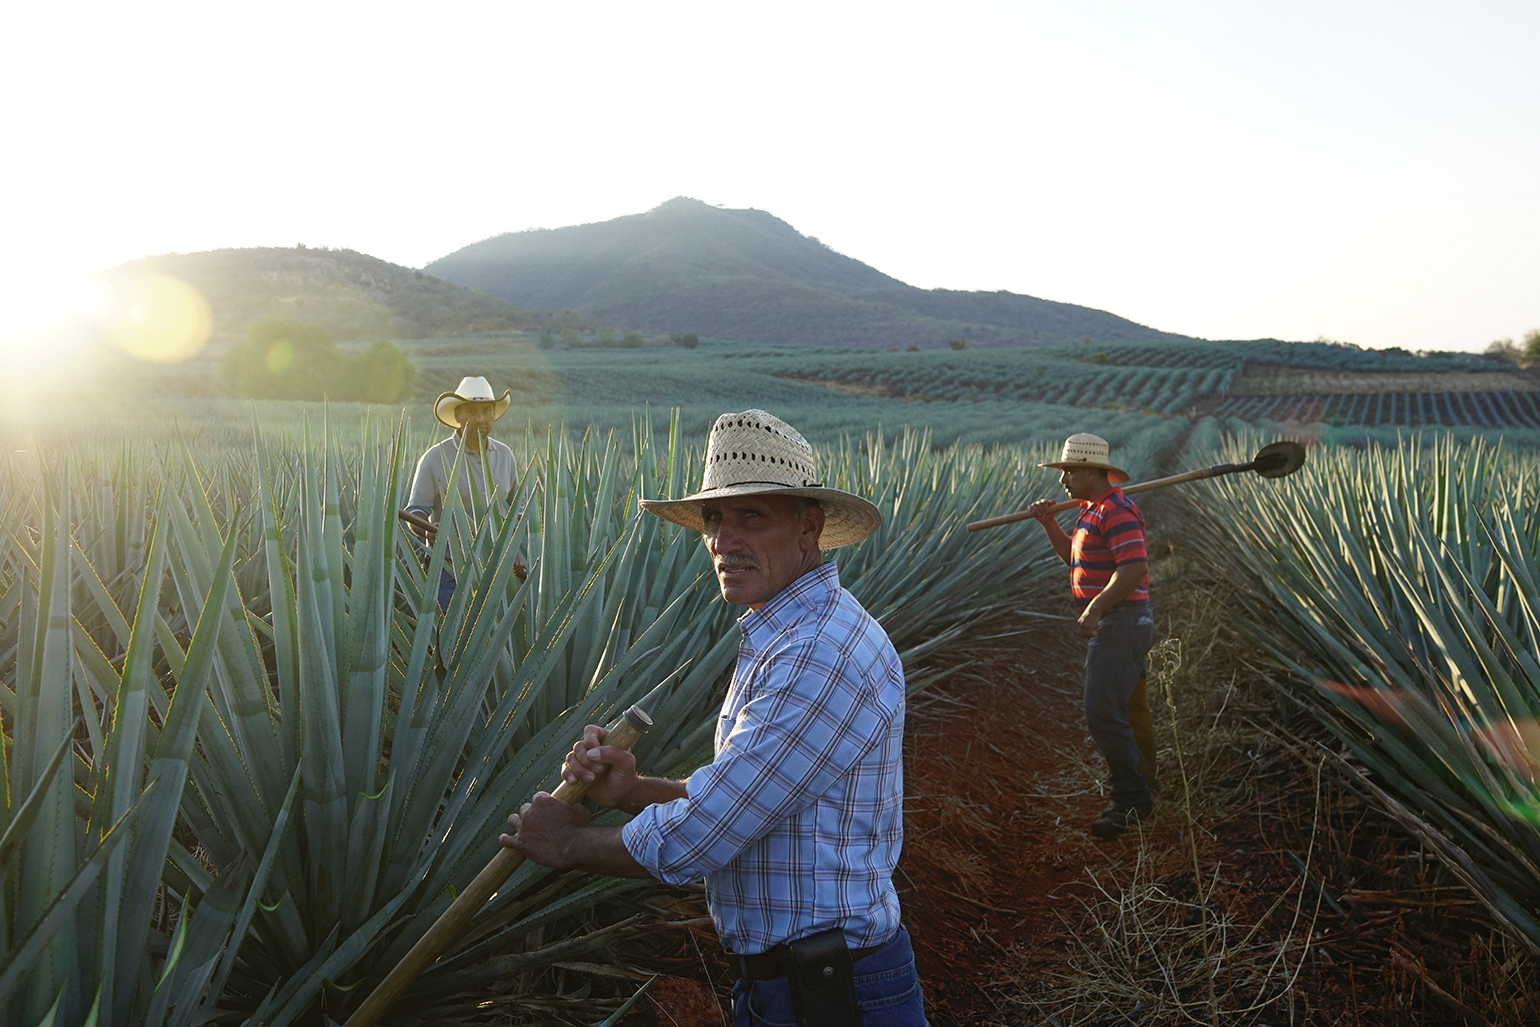 Cazadores_Agave-Lifecycle_Agave-Field-Jimadors-1.jpg